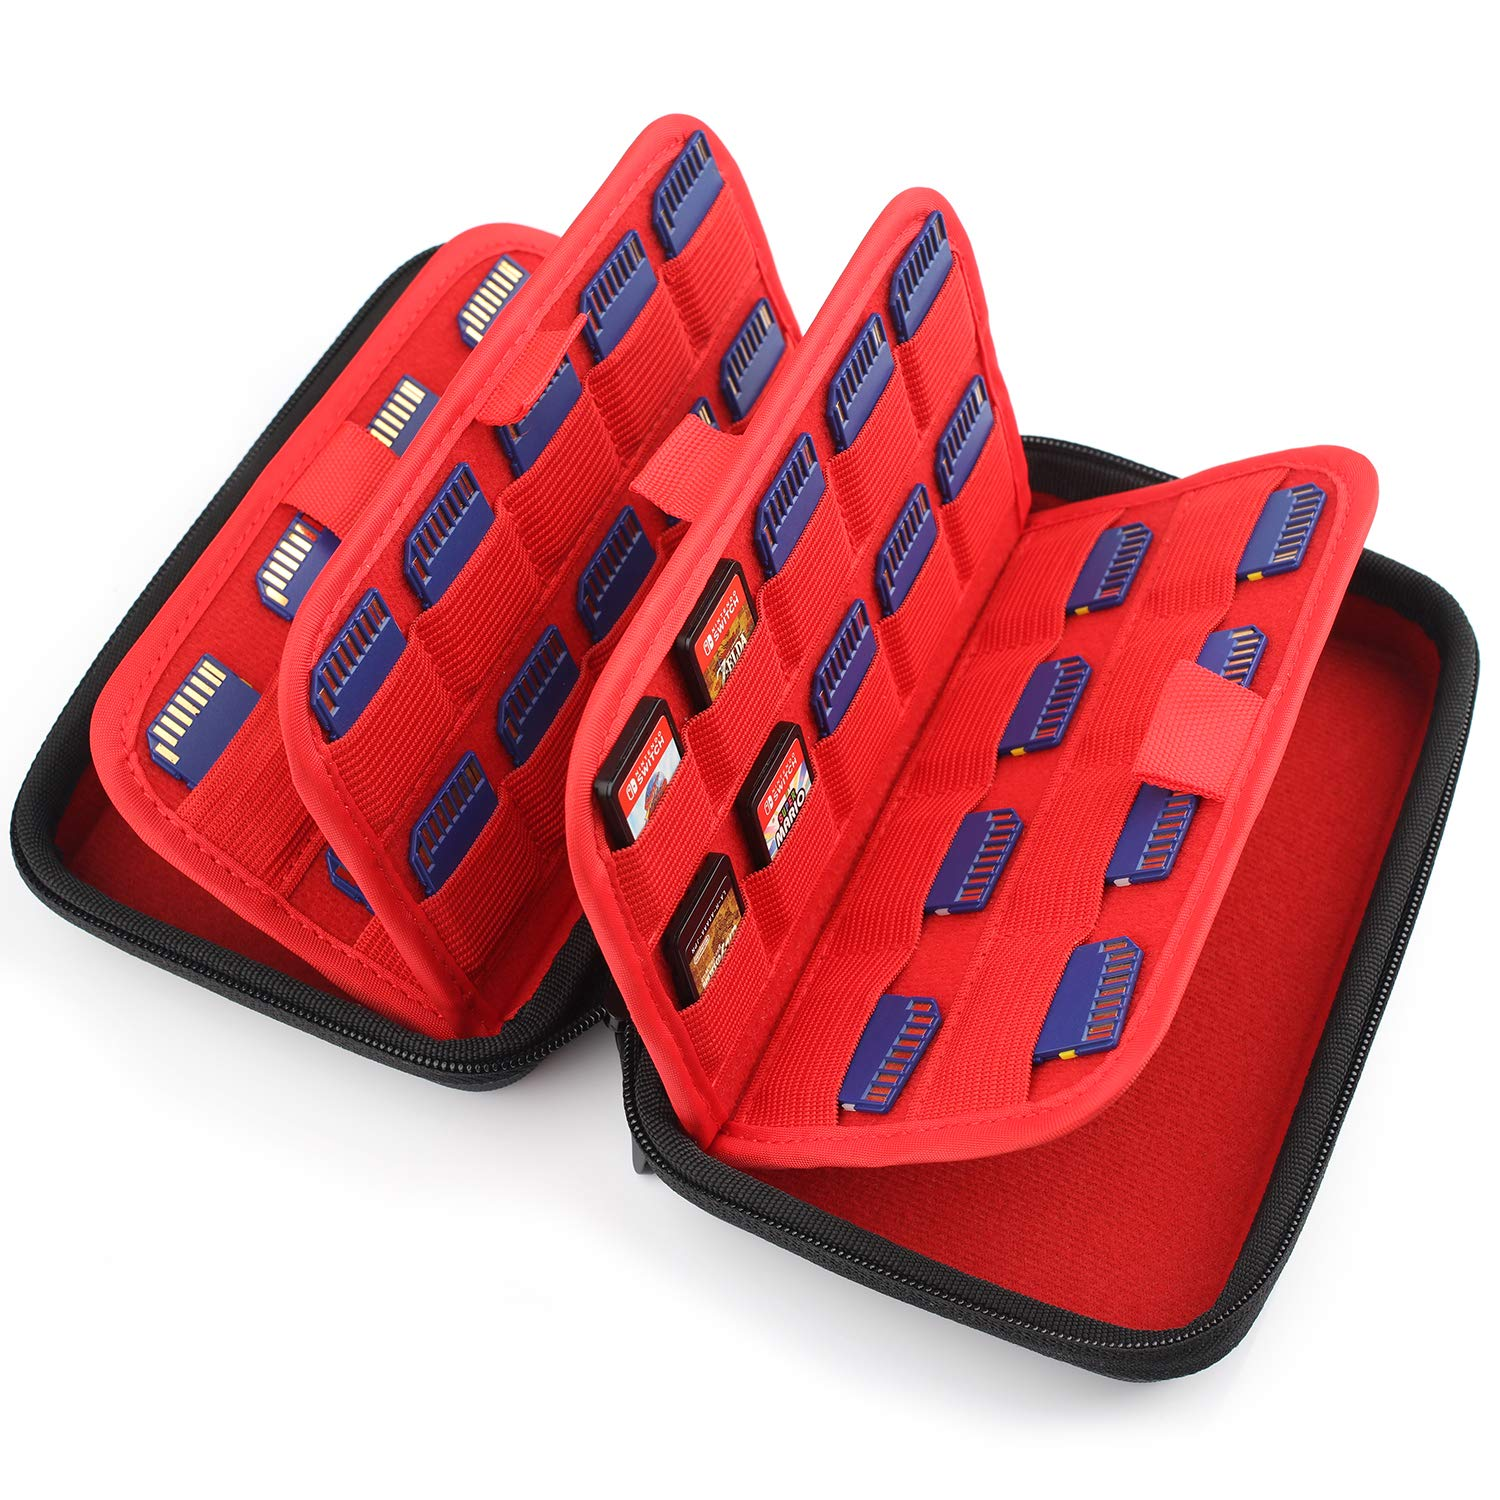 momen Game Card Storage for Organizing Nintendo Switch 3DS/2DS, Ps Vita Games, SD Memory Cards with 72 Elastic Slots Protective Hard Card Cartridges Carrying Case